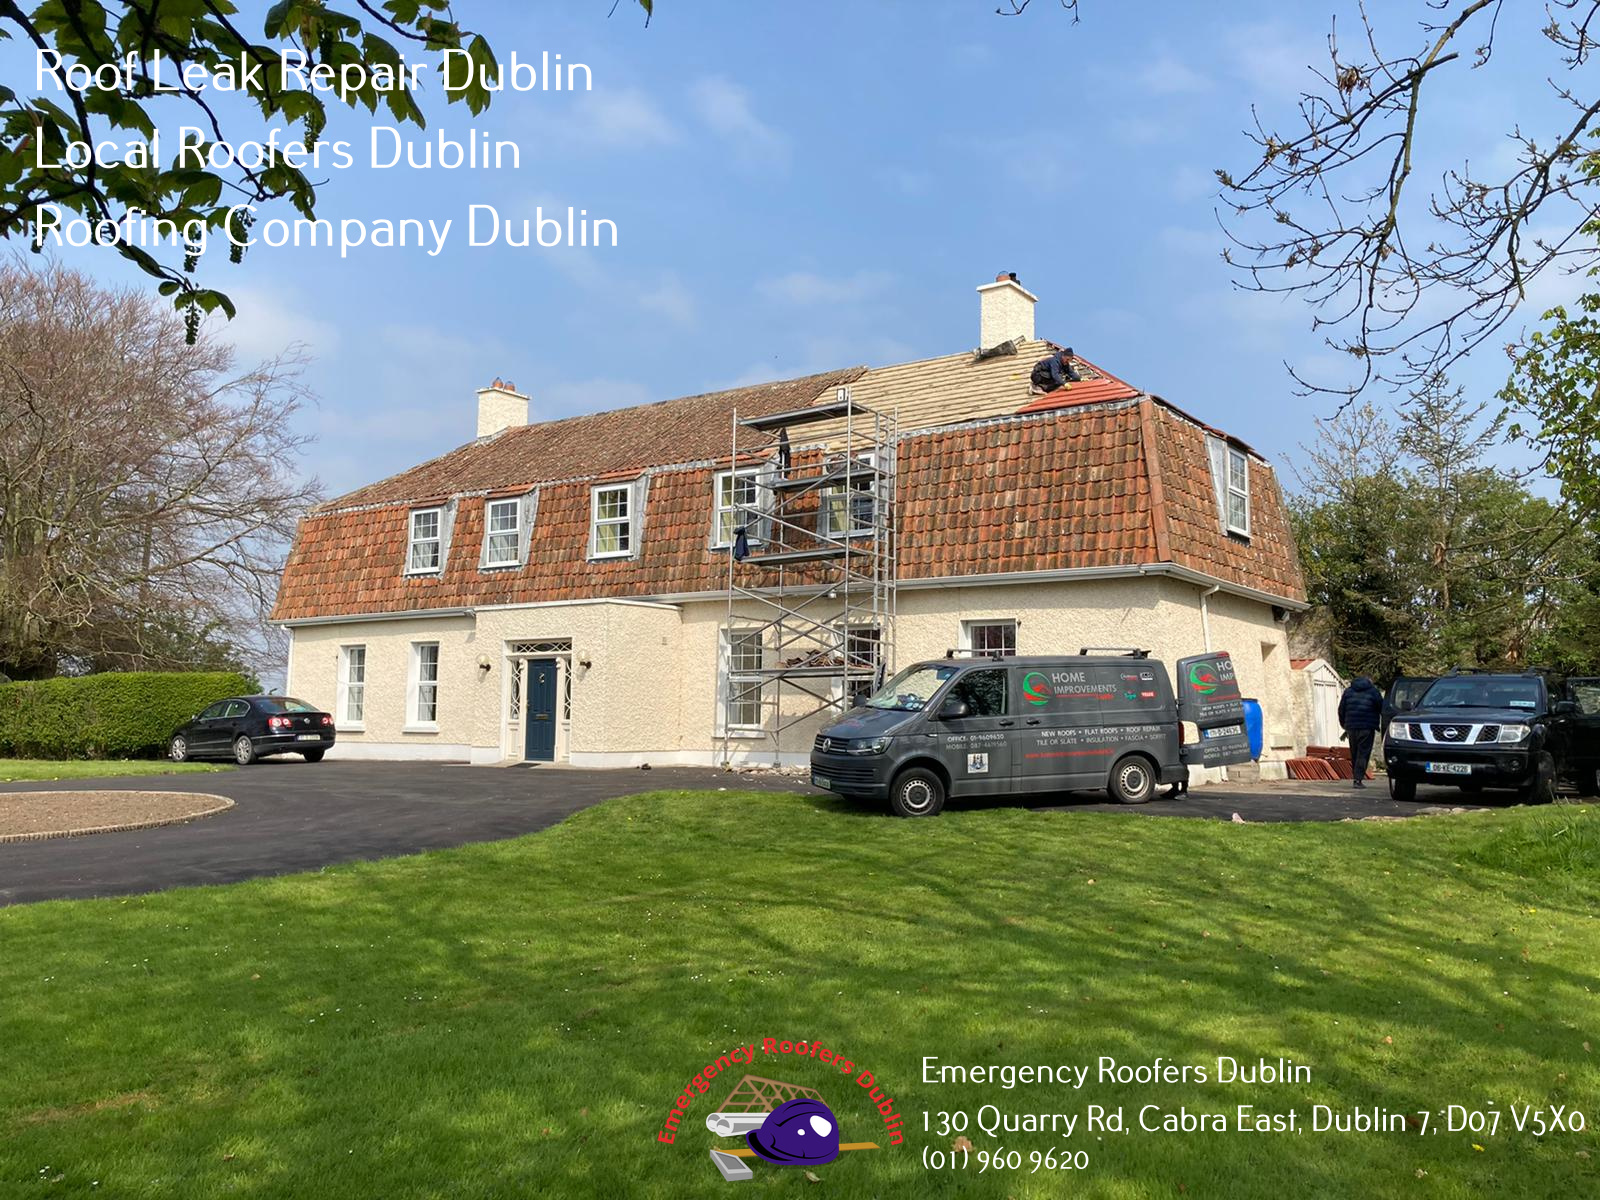 Emergency Roofers Dublin Officially Opens A New Business Profile On Google, Roof Repairs Dublin (Emergency Roofers Dublin), To Service Dublin 1 and Surrounding Areas